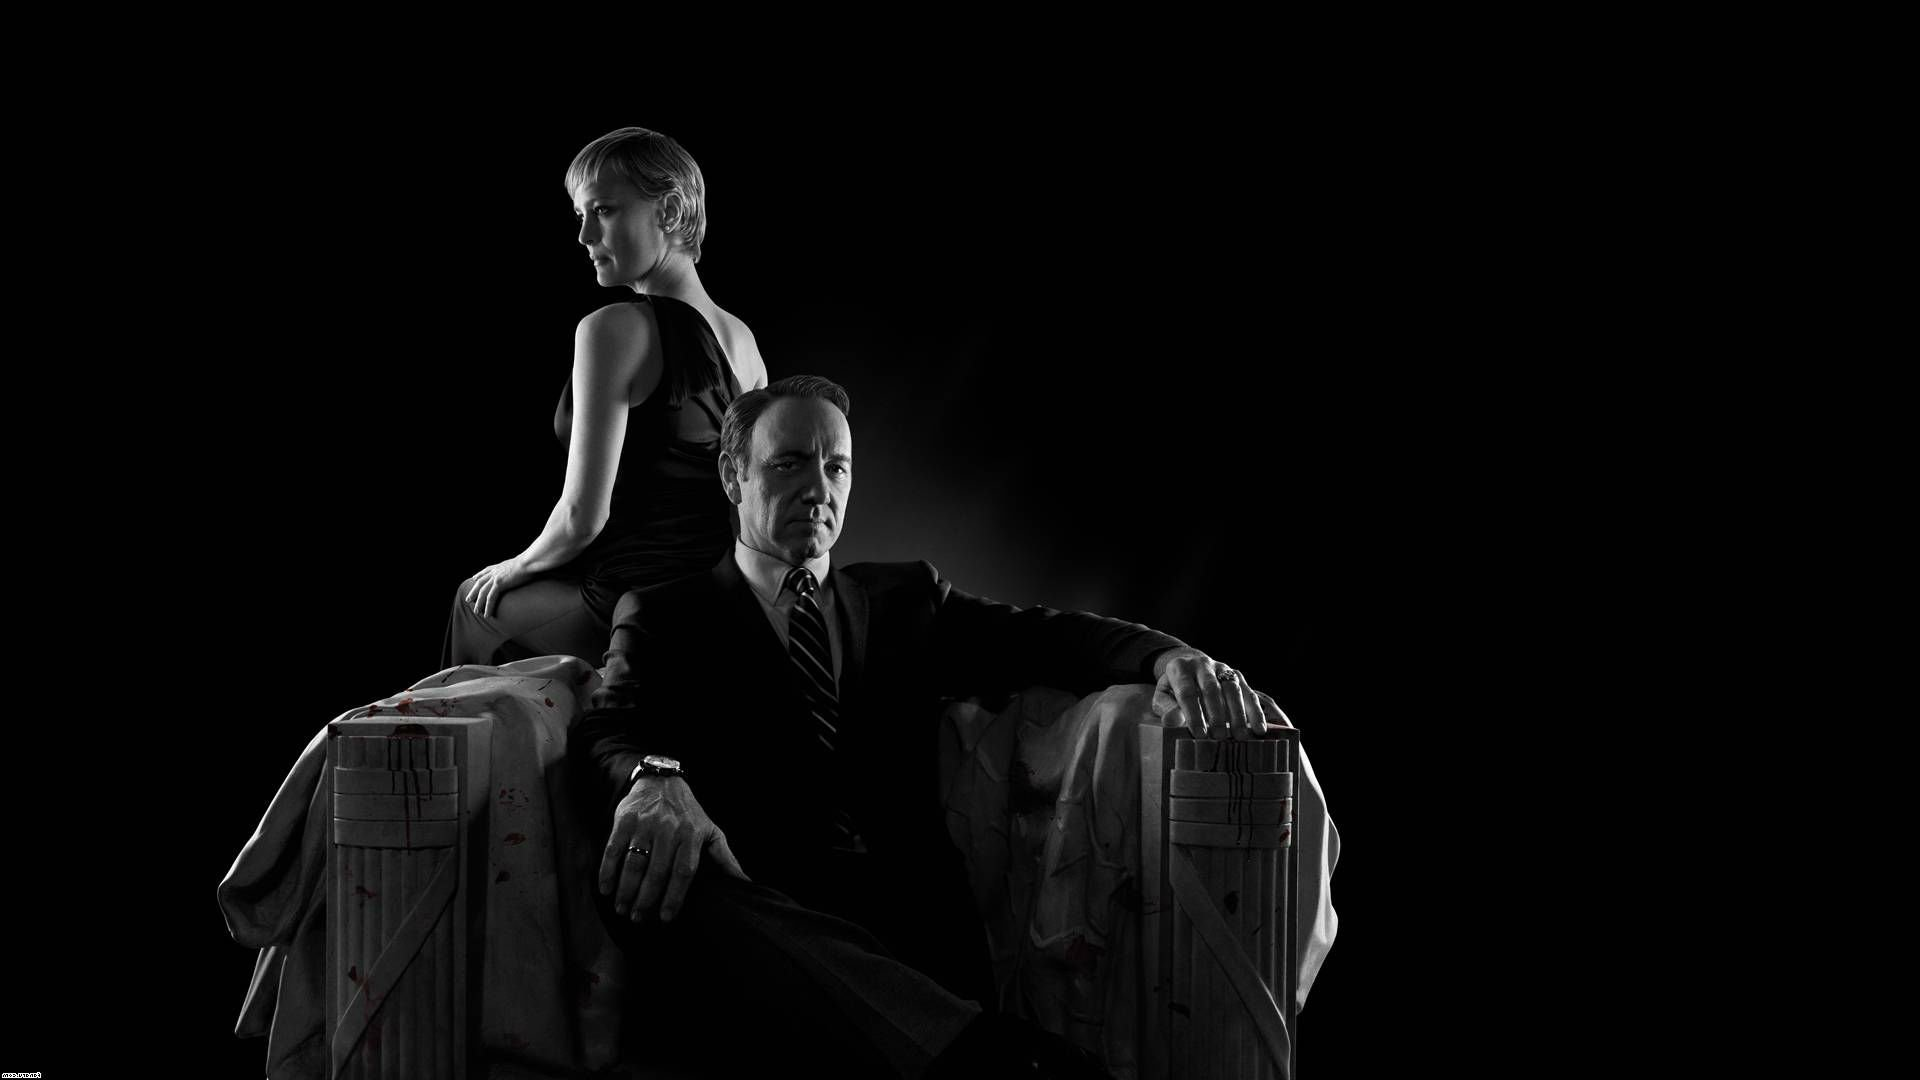 Free Download House Of Cards Political Drama Series 20 Wallpaper